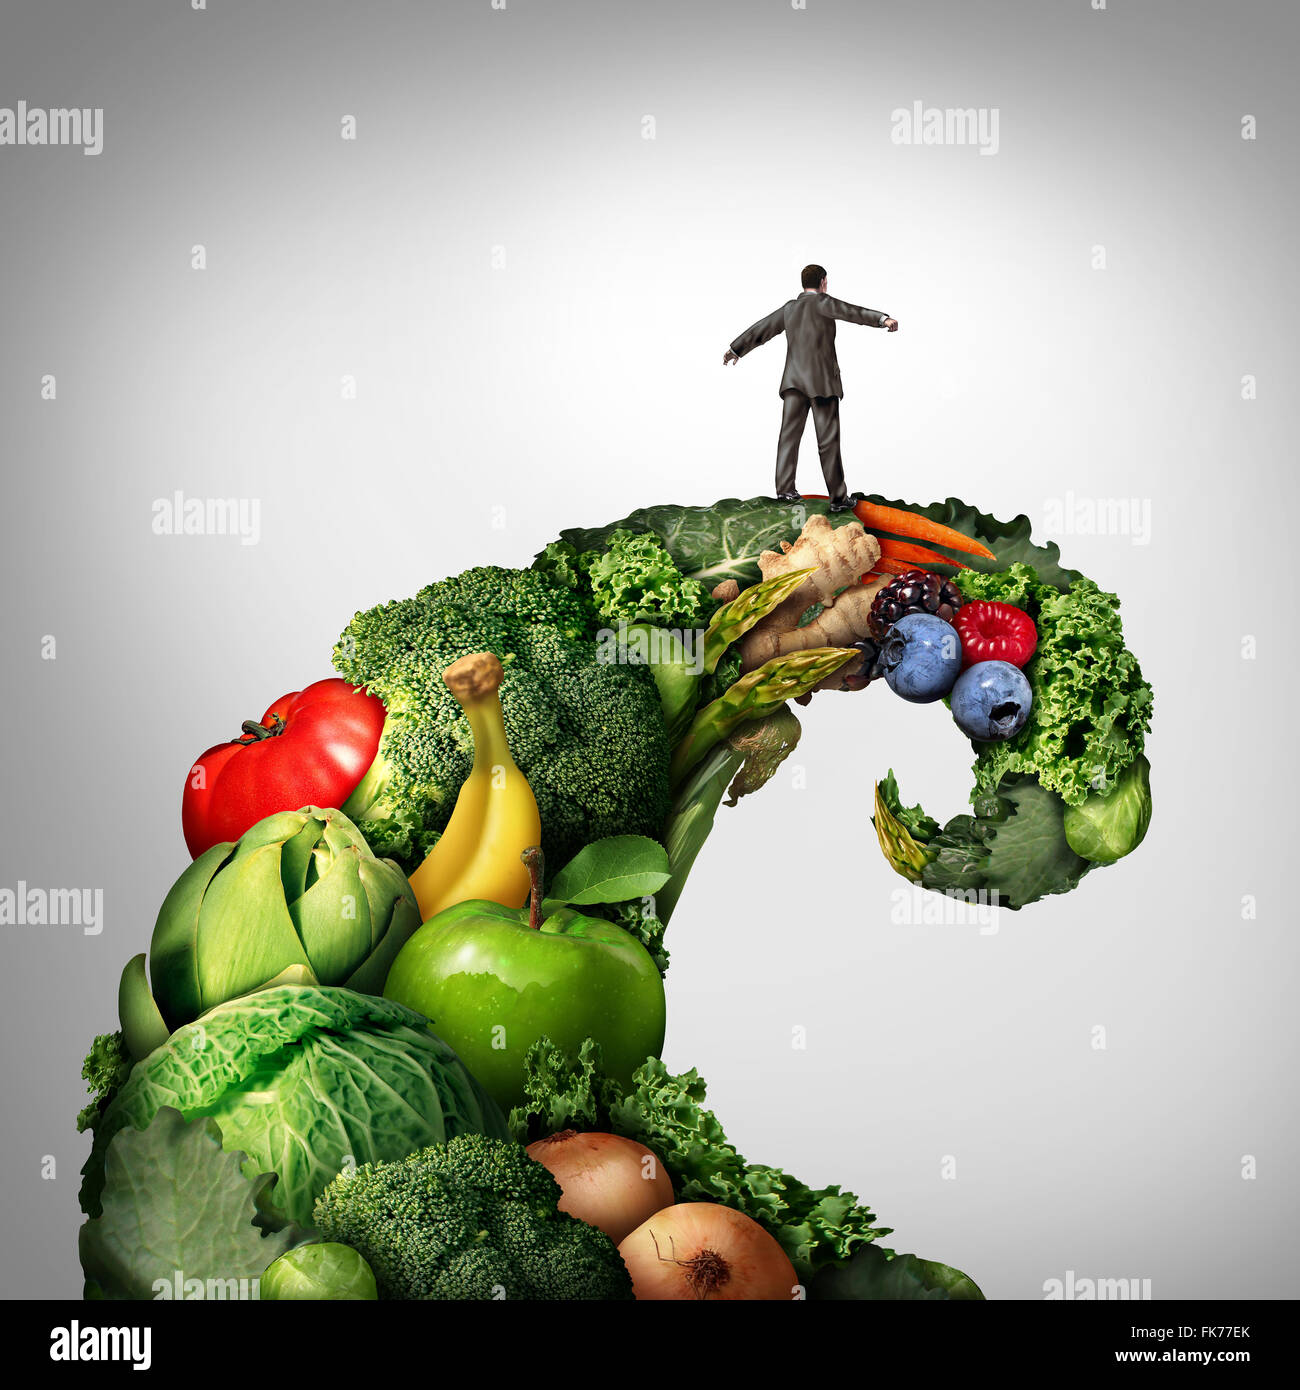 Healthy living movement as a person on top of a group of vegetables and fruit shaped as a wave or tide representing - Stock Image